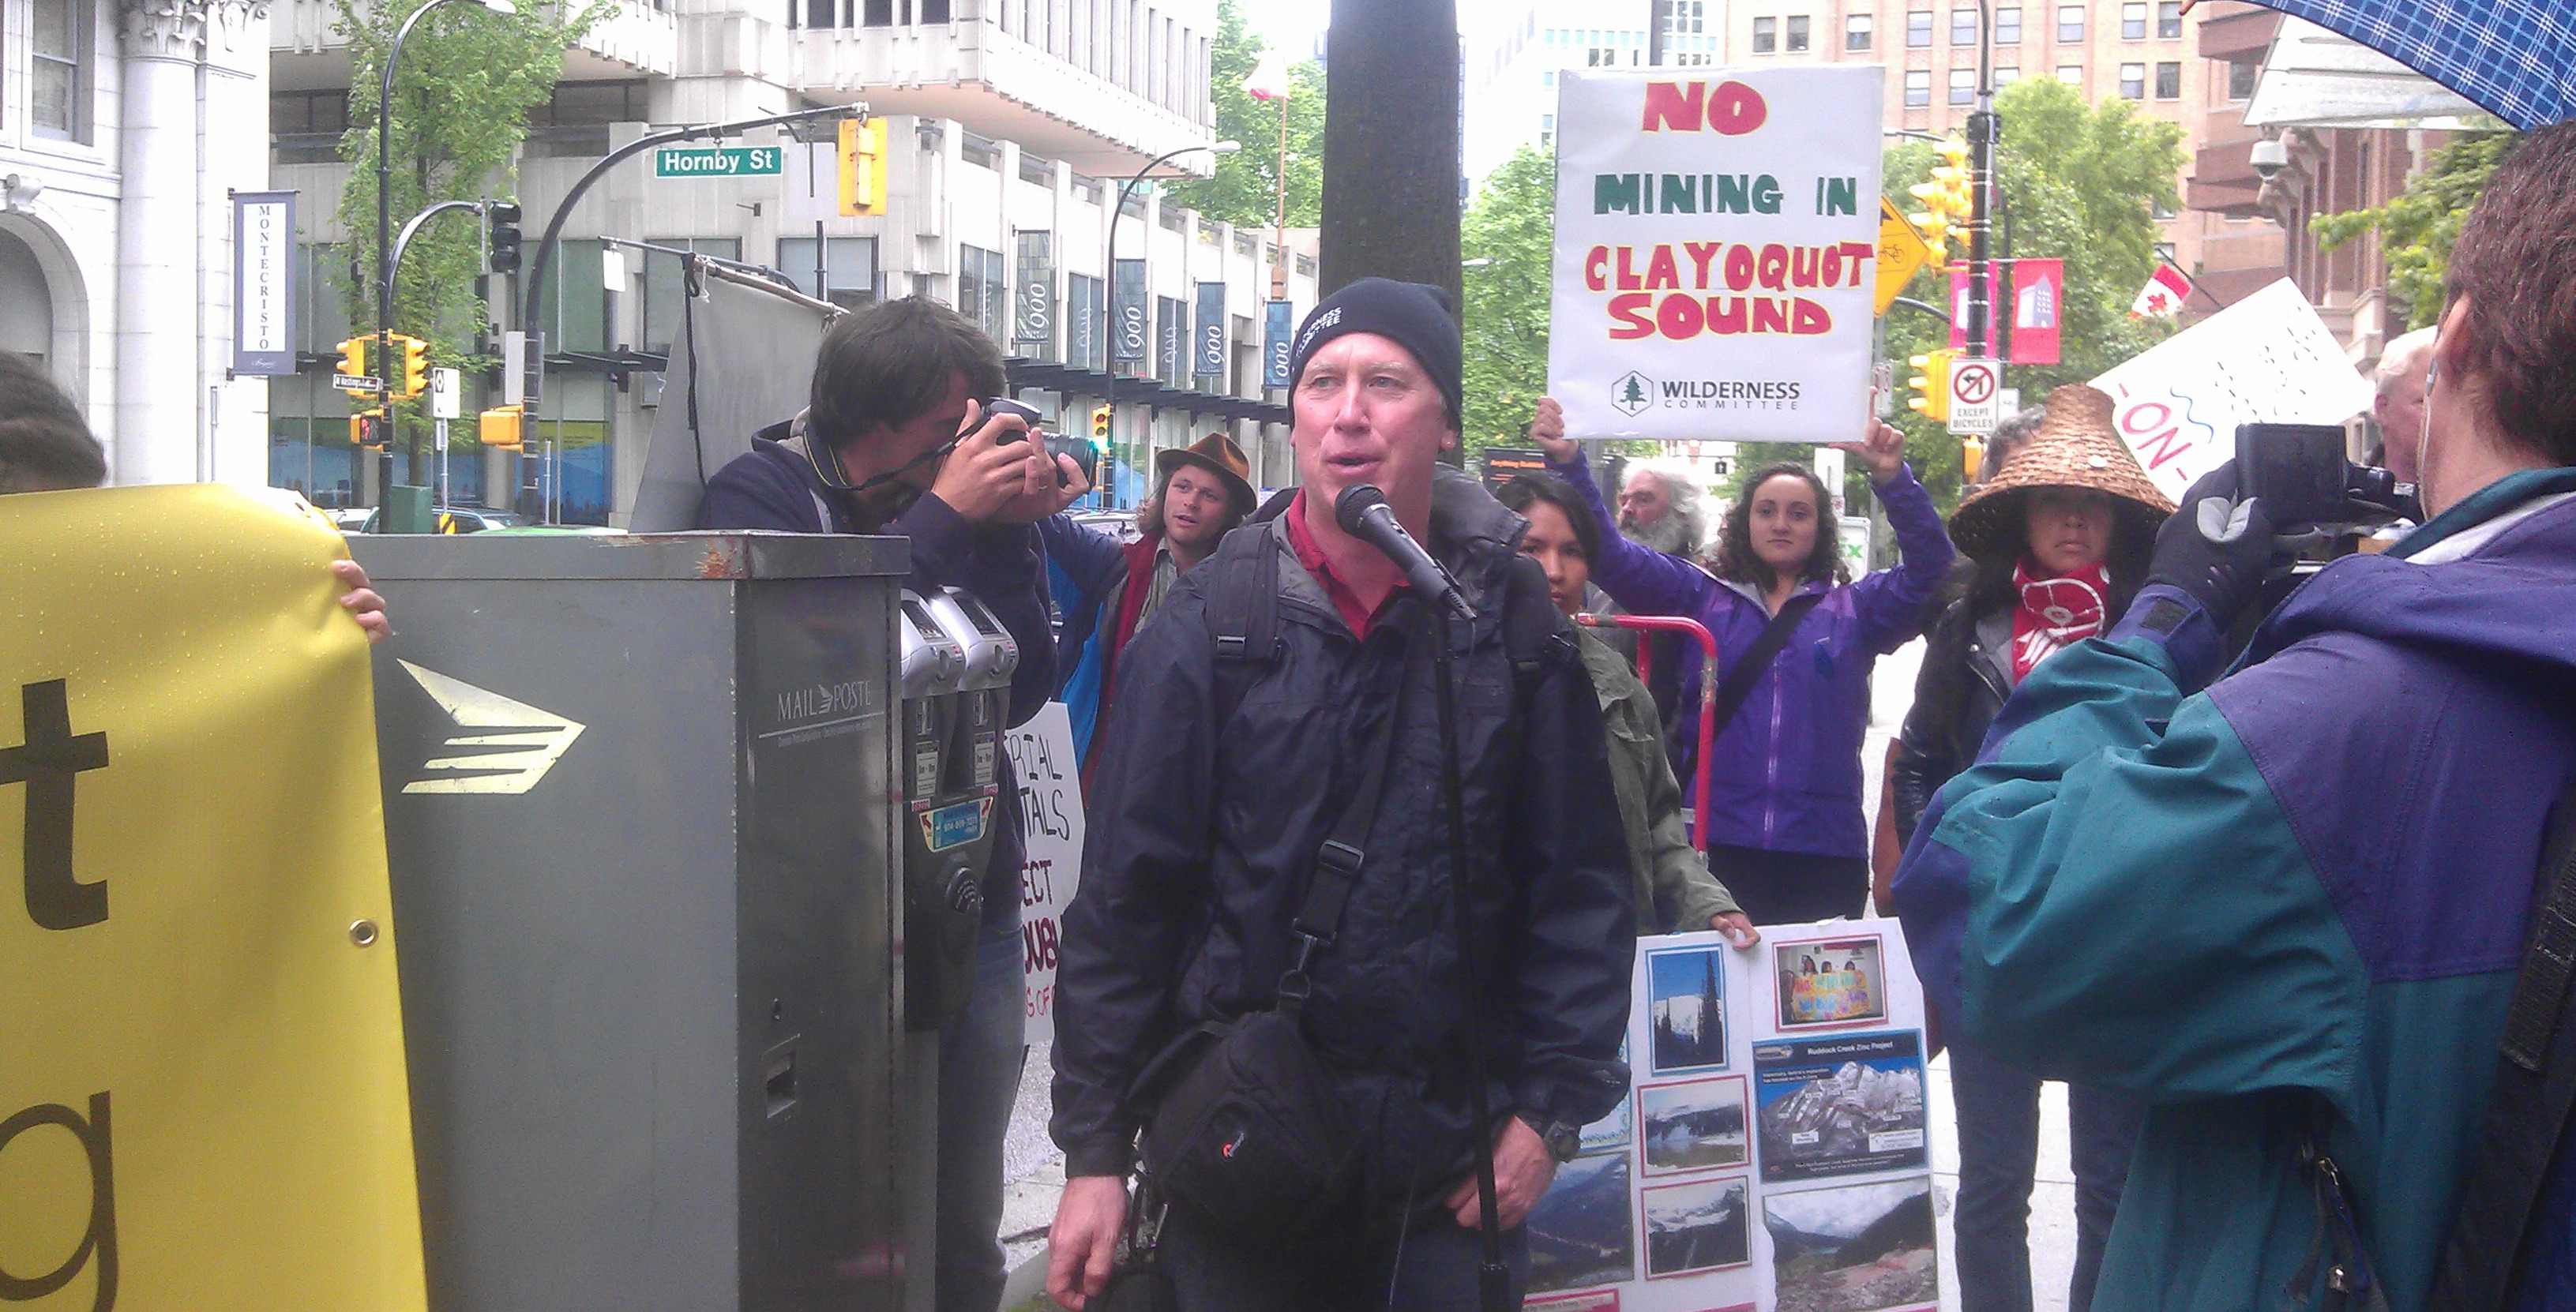 Activists protest Clayoquot Sound mining plans   Wilderness Committee